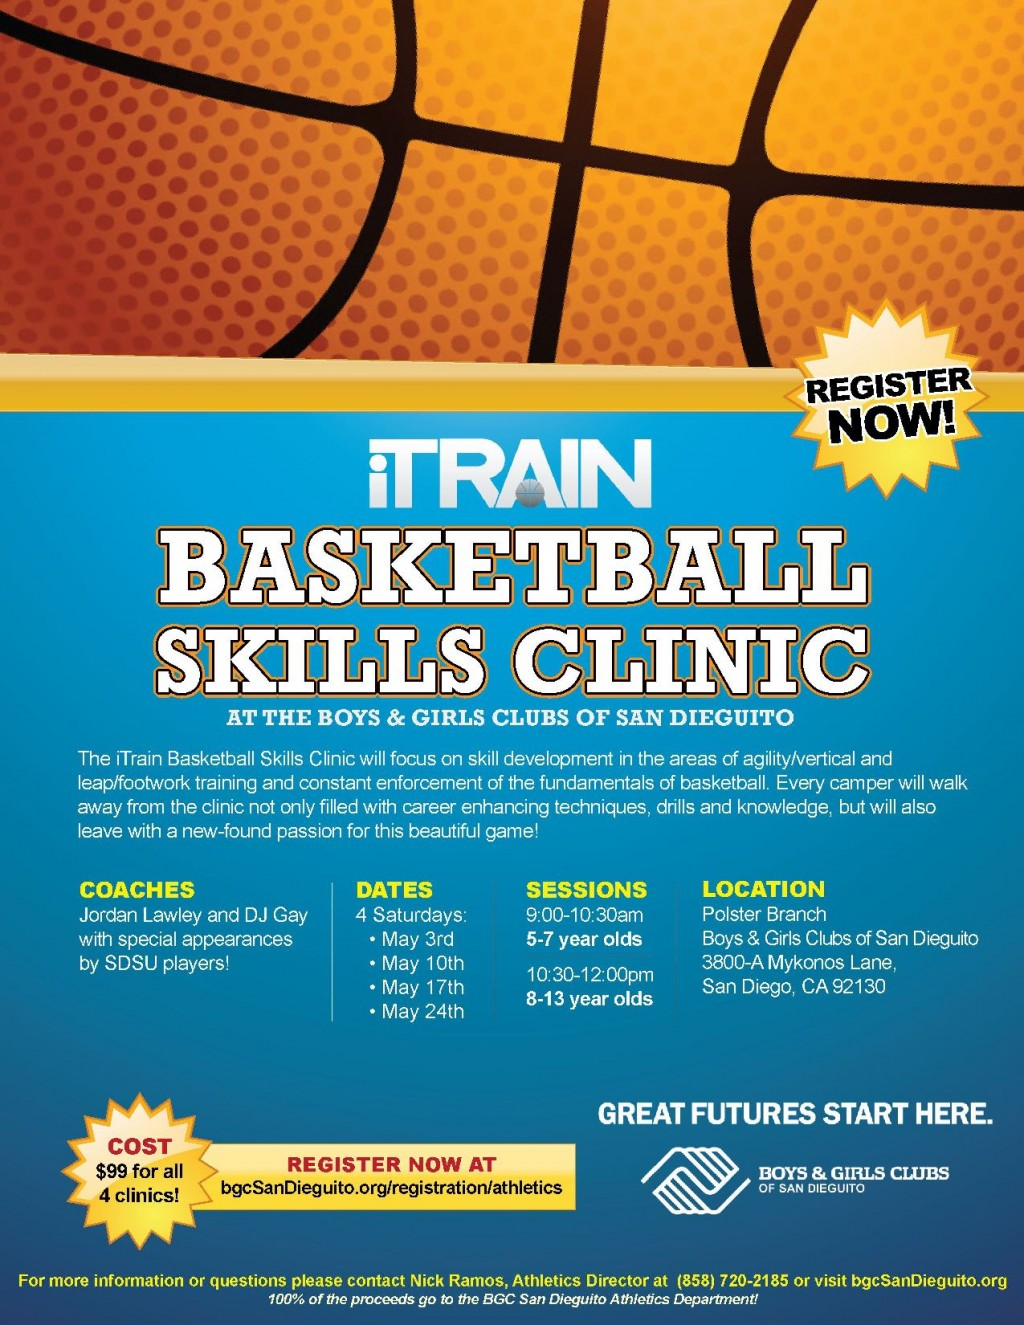 007 Breathtaking Basketball Flyer Template Free Image  Brochure Tryout CampLarge